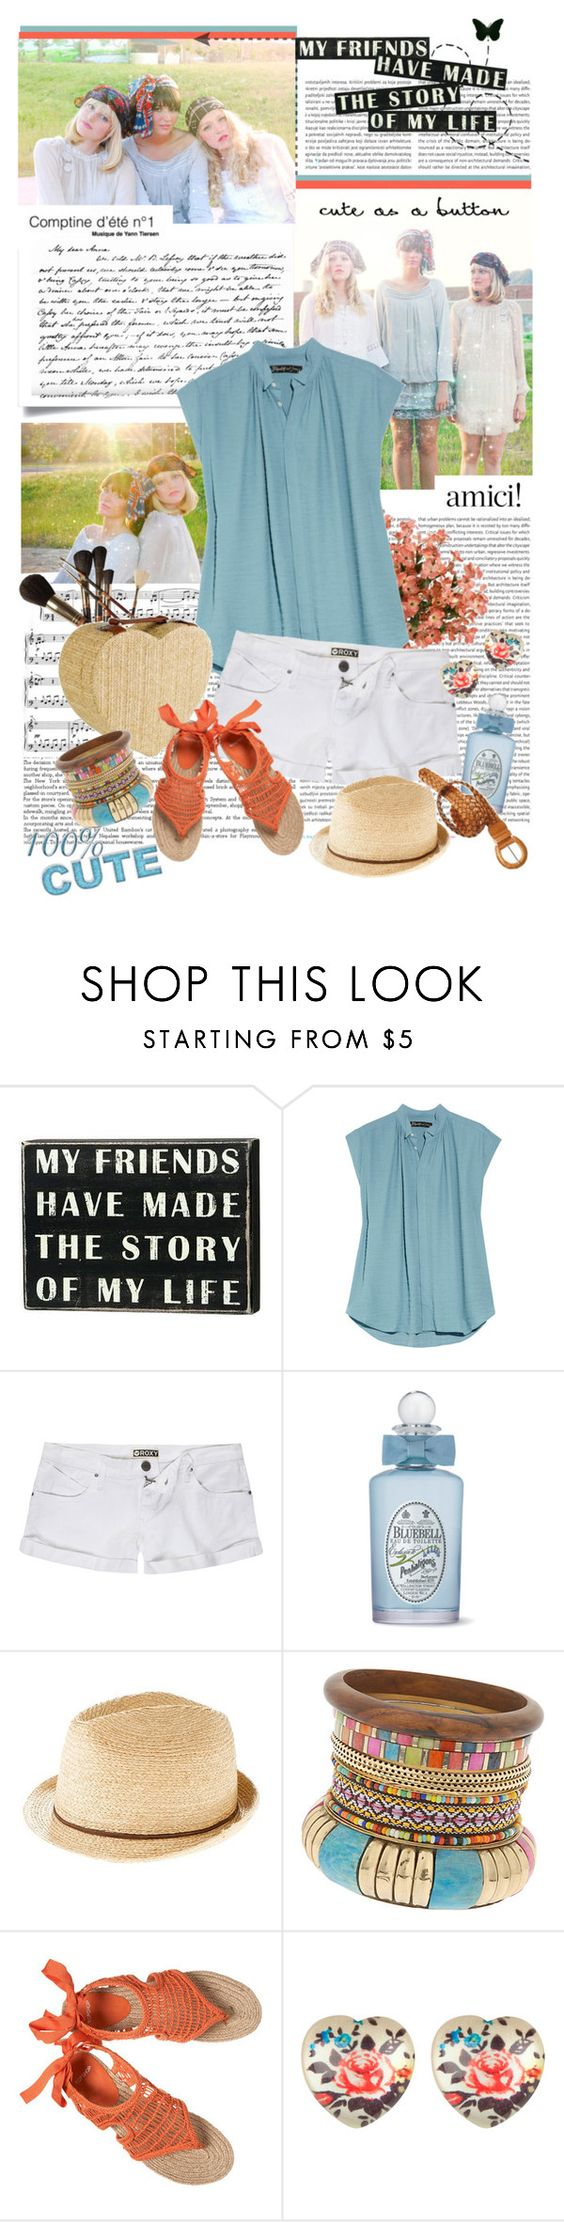 """Tagged by Cadbury-sparks"" by jesuisunlapin ❤ liked on Polyvore featuring Oris, Été Swim, Primitives By Kathy, Pieces, Elizabeth and James, Roxy, PENHALIGON'S, Madewell, Urban Outfitters and ALDO"